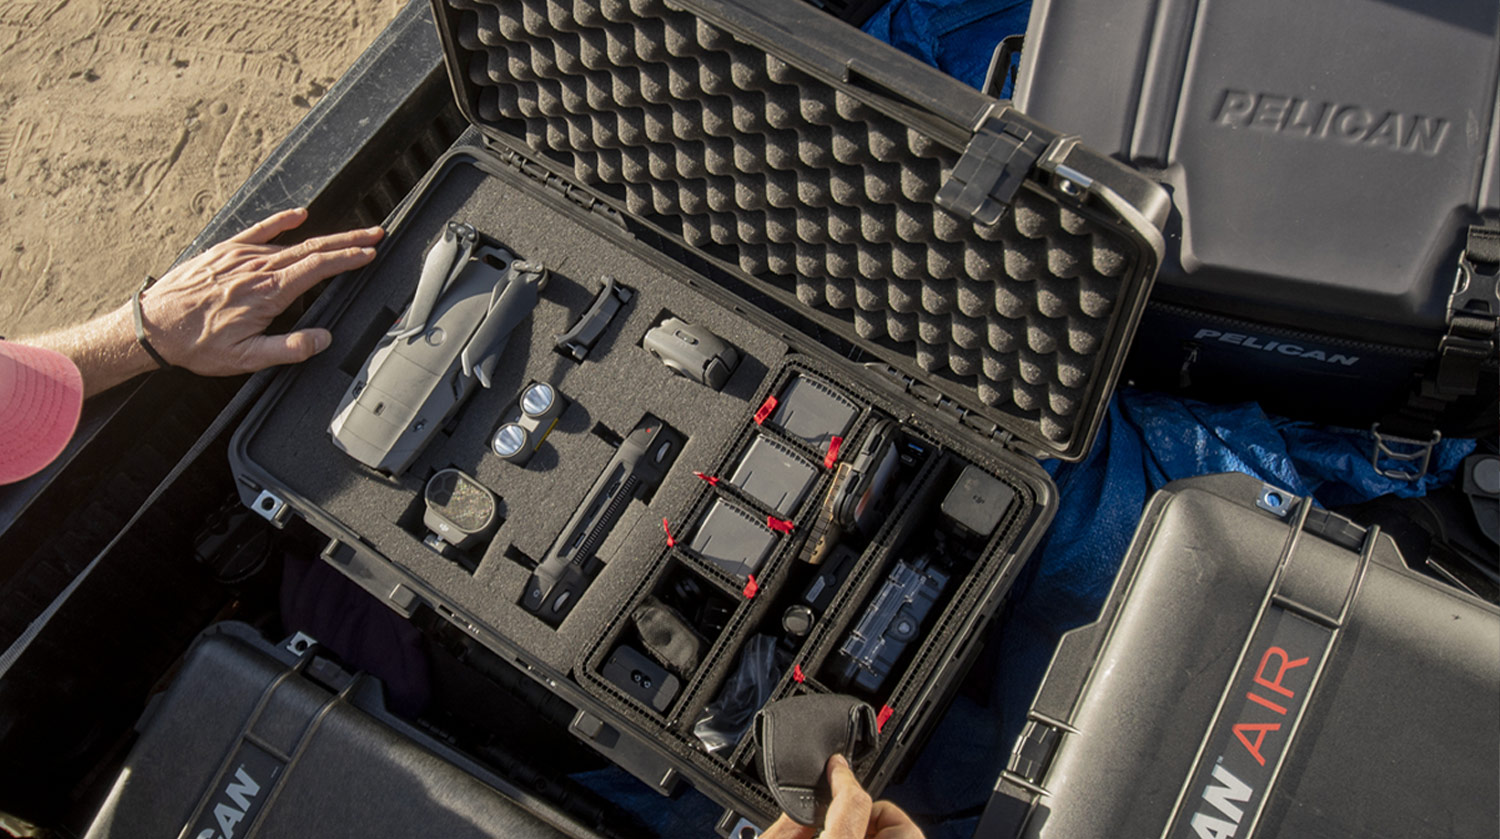 pelican professional blog choosing the right pelican case for your gear